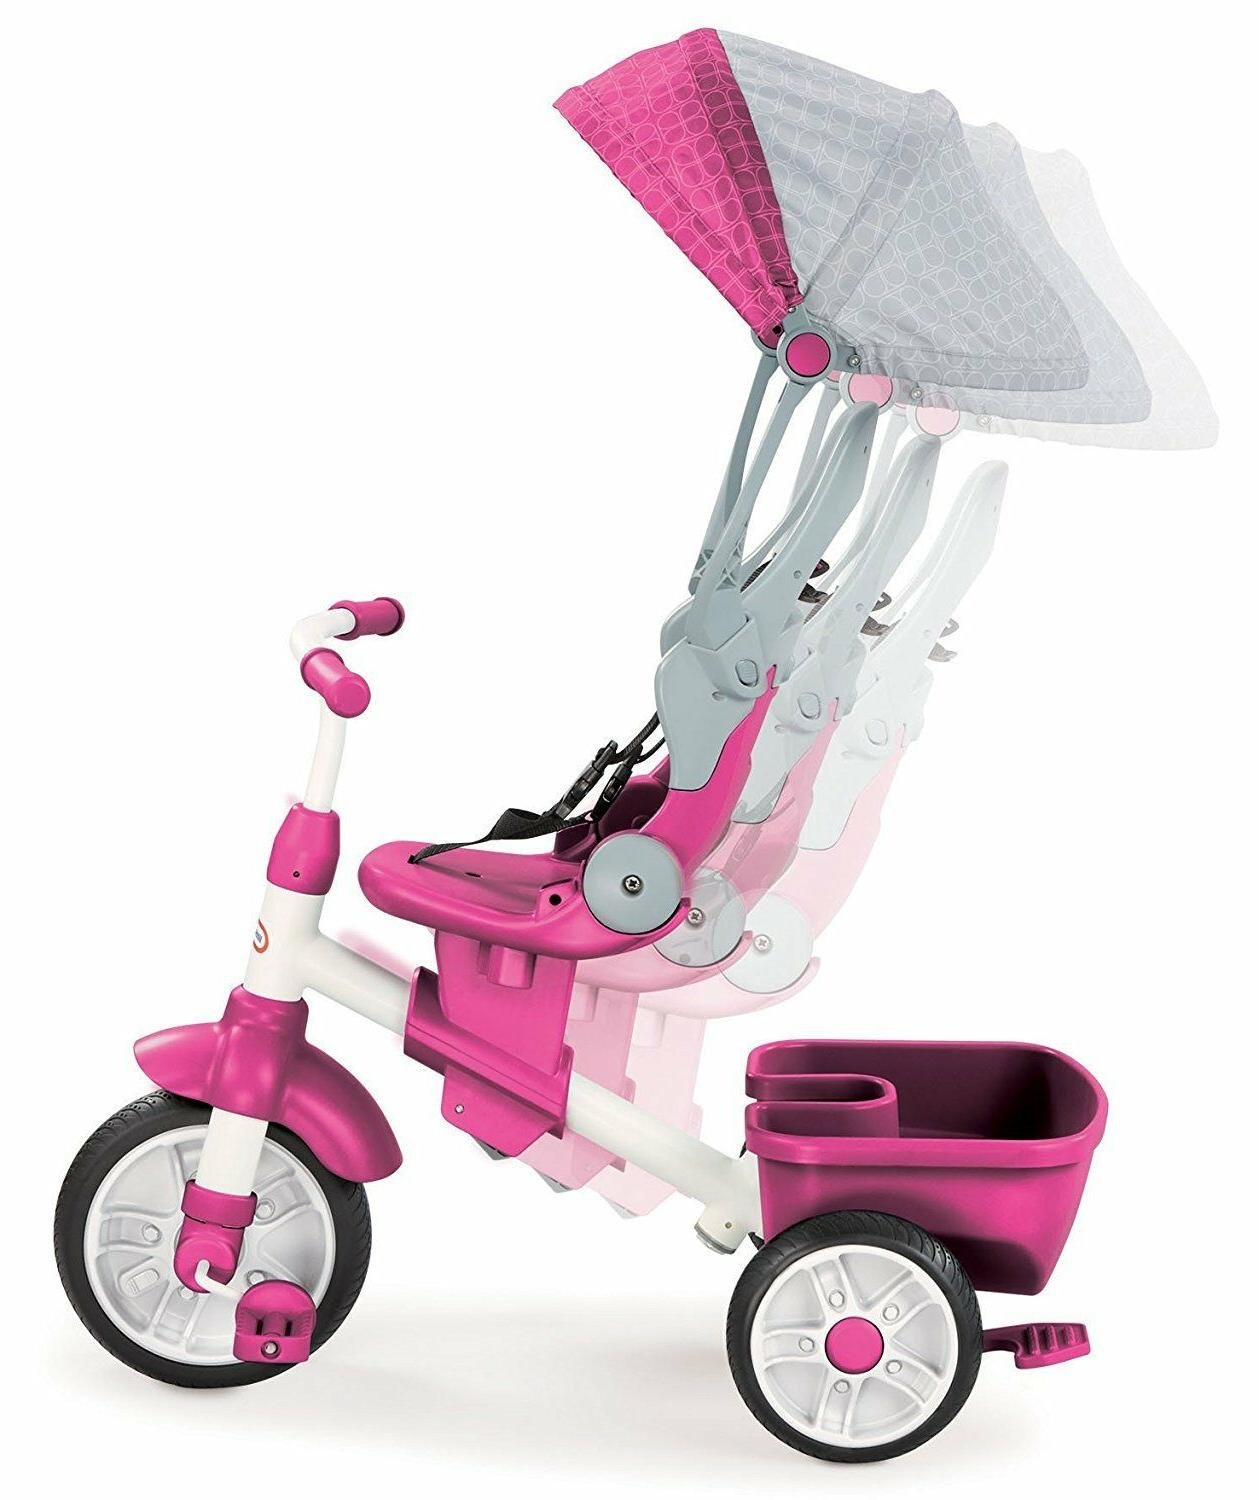 Ride On 2 Fun Trike 4 in Infant